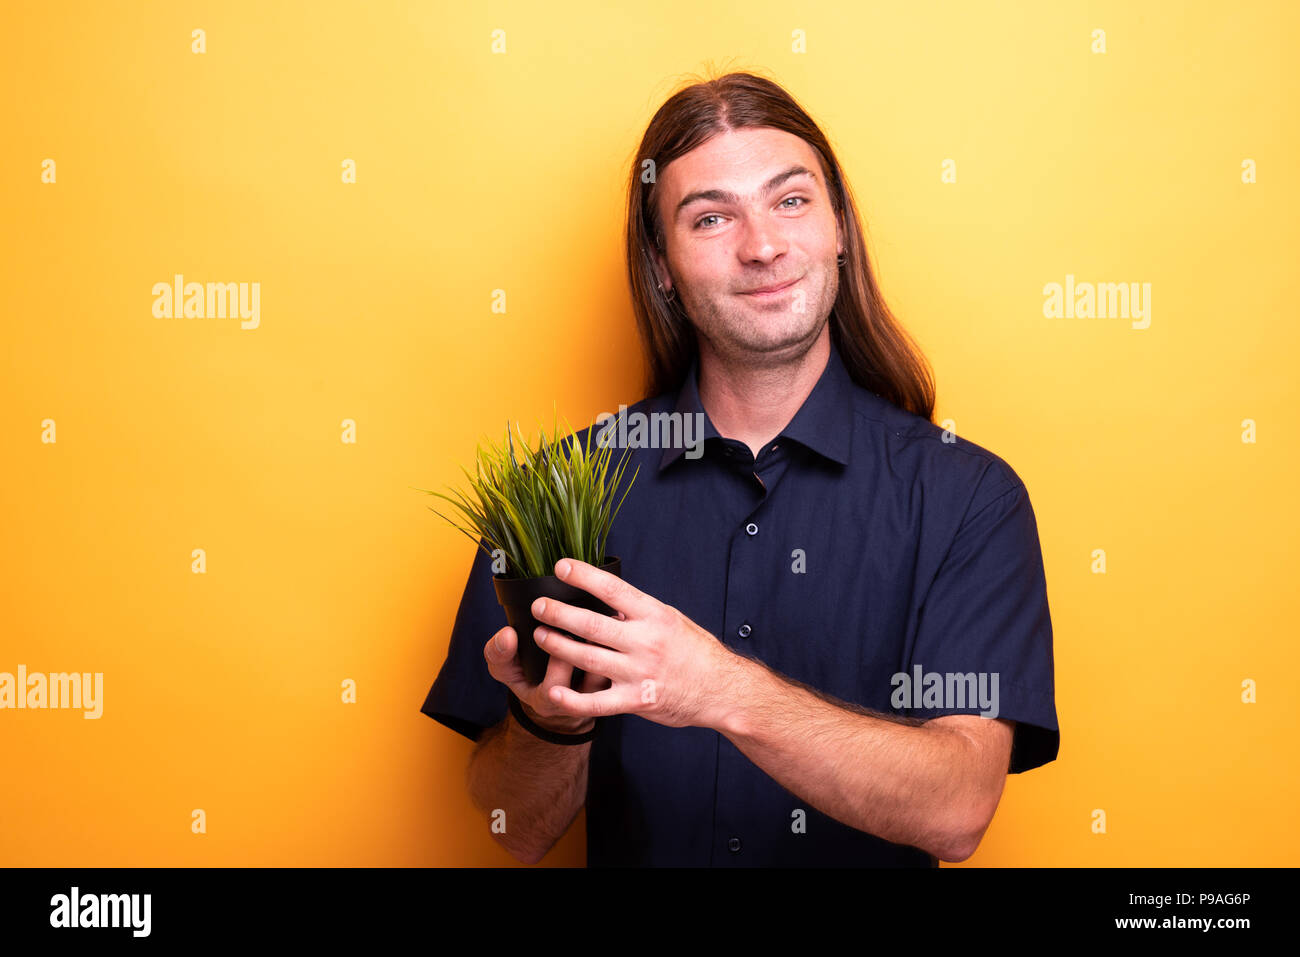 Man showing apartment plant in a pot - Stock Image